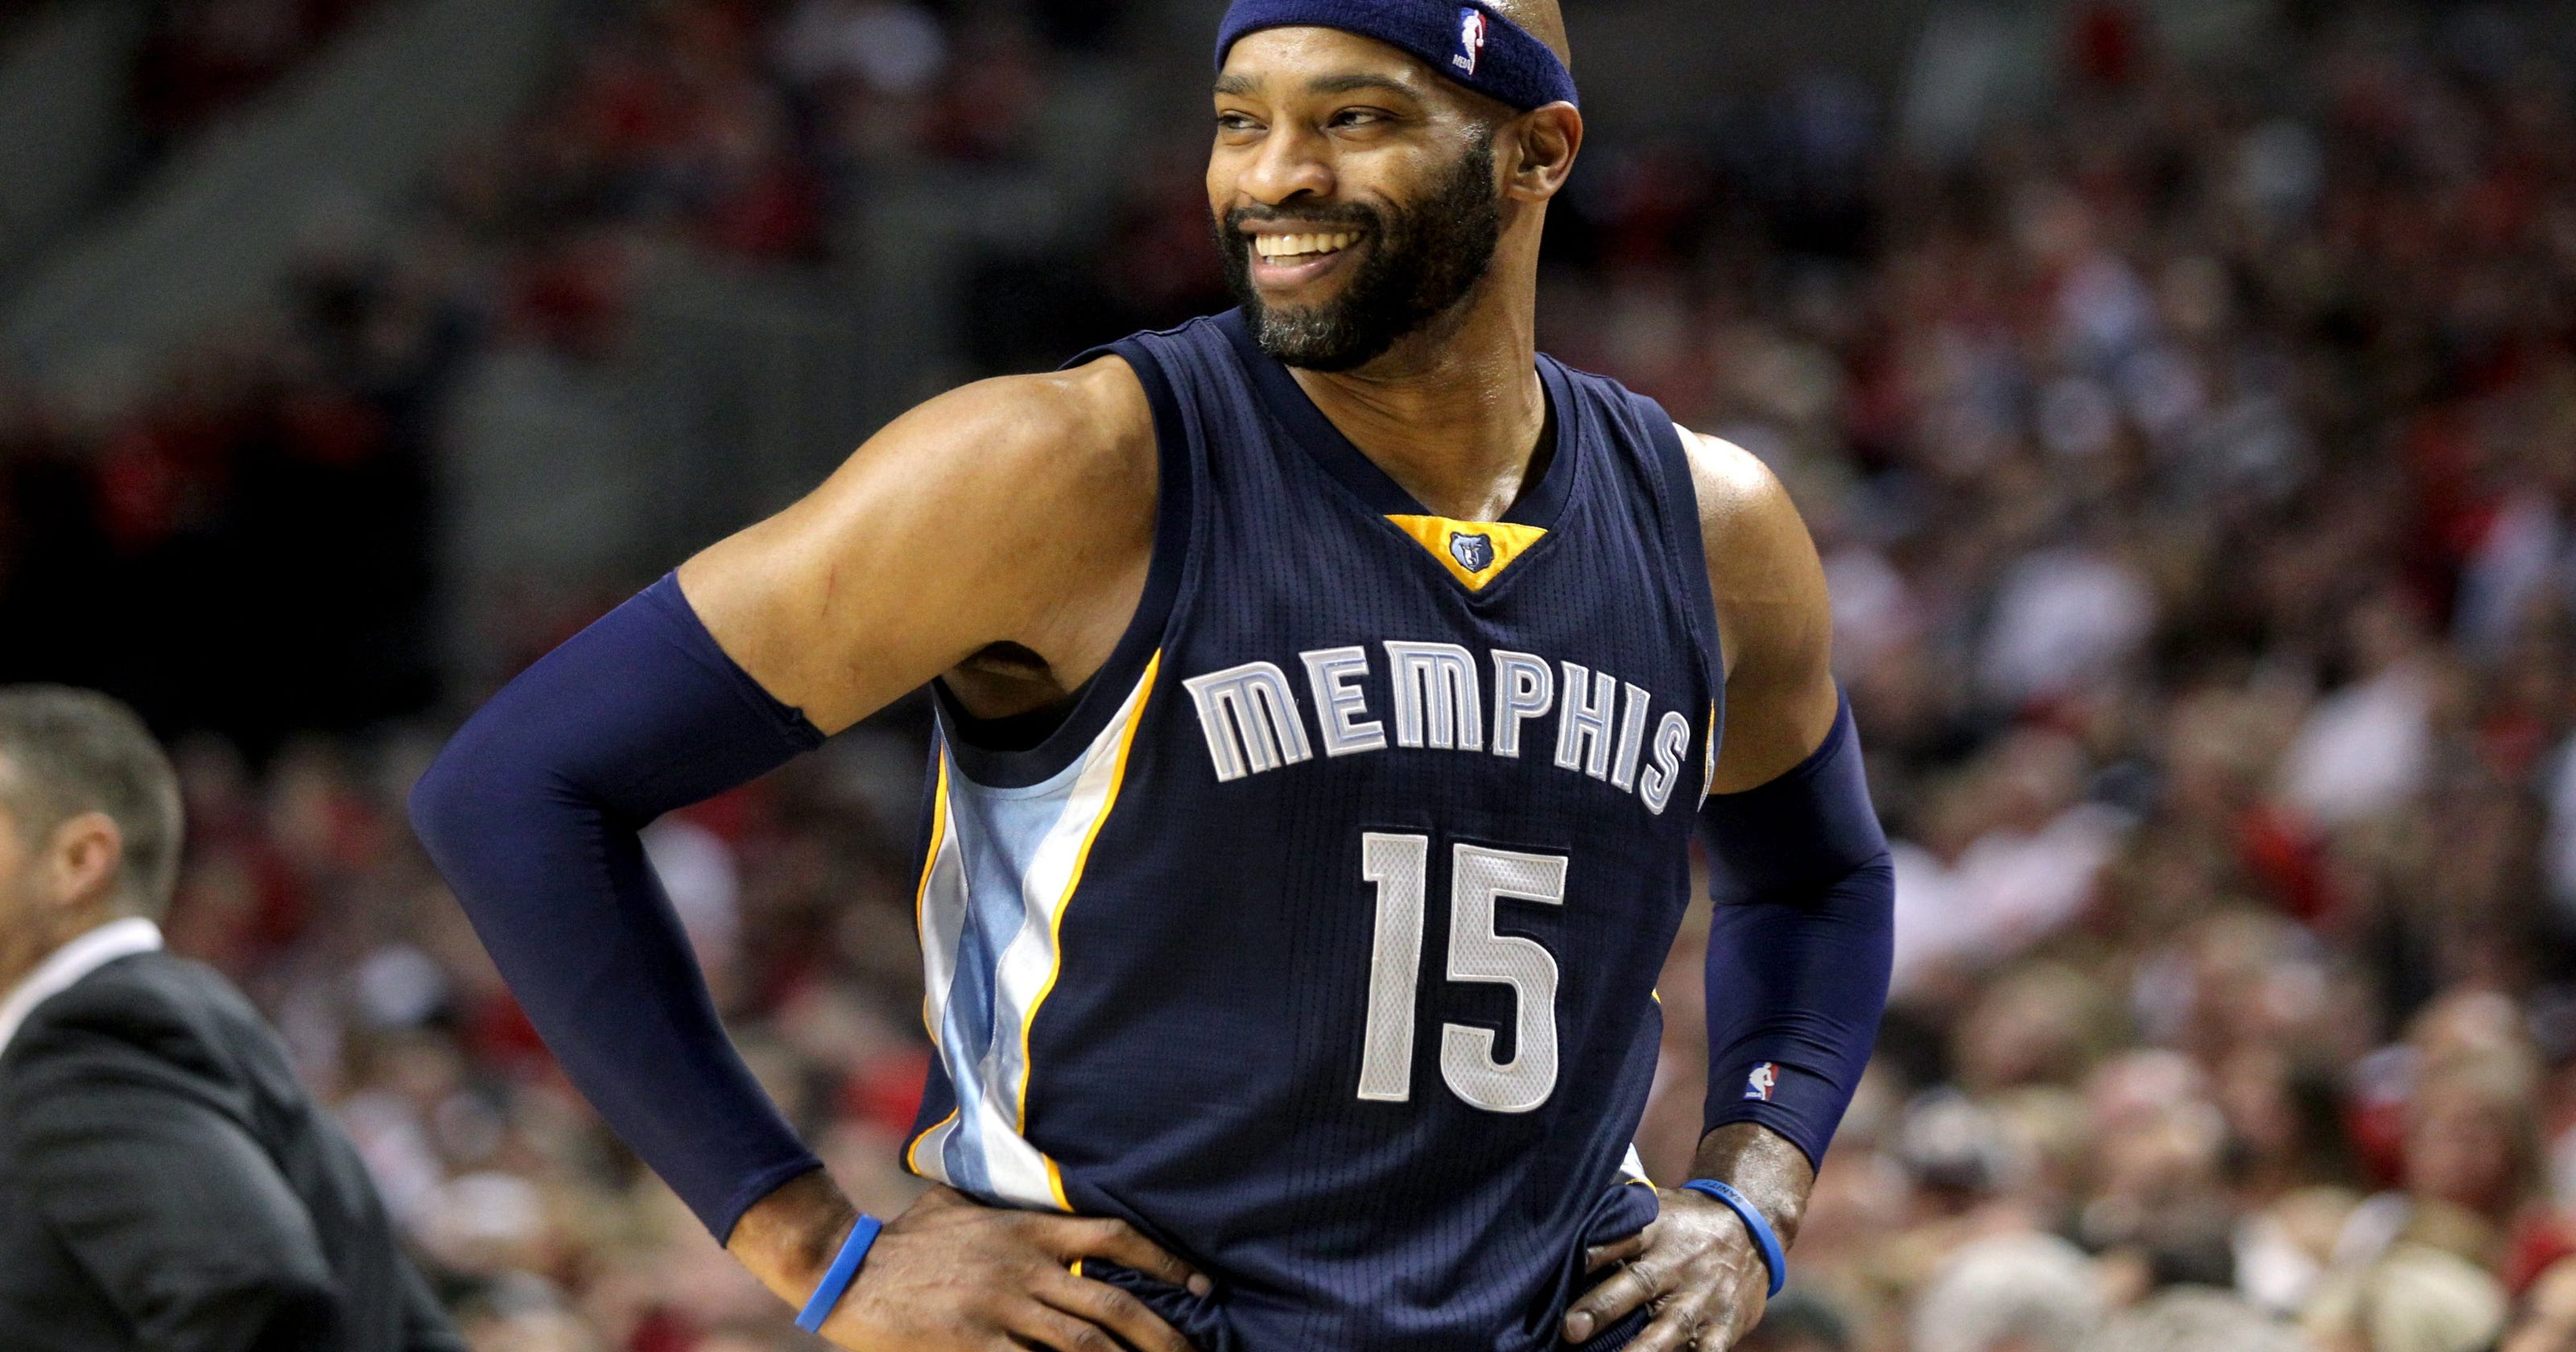 meet 6fddc 59ab1 Vince Carter to play utility role for Grizzlies